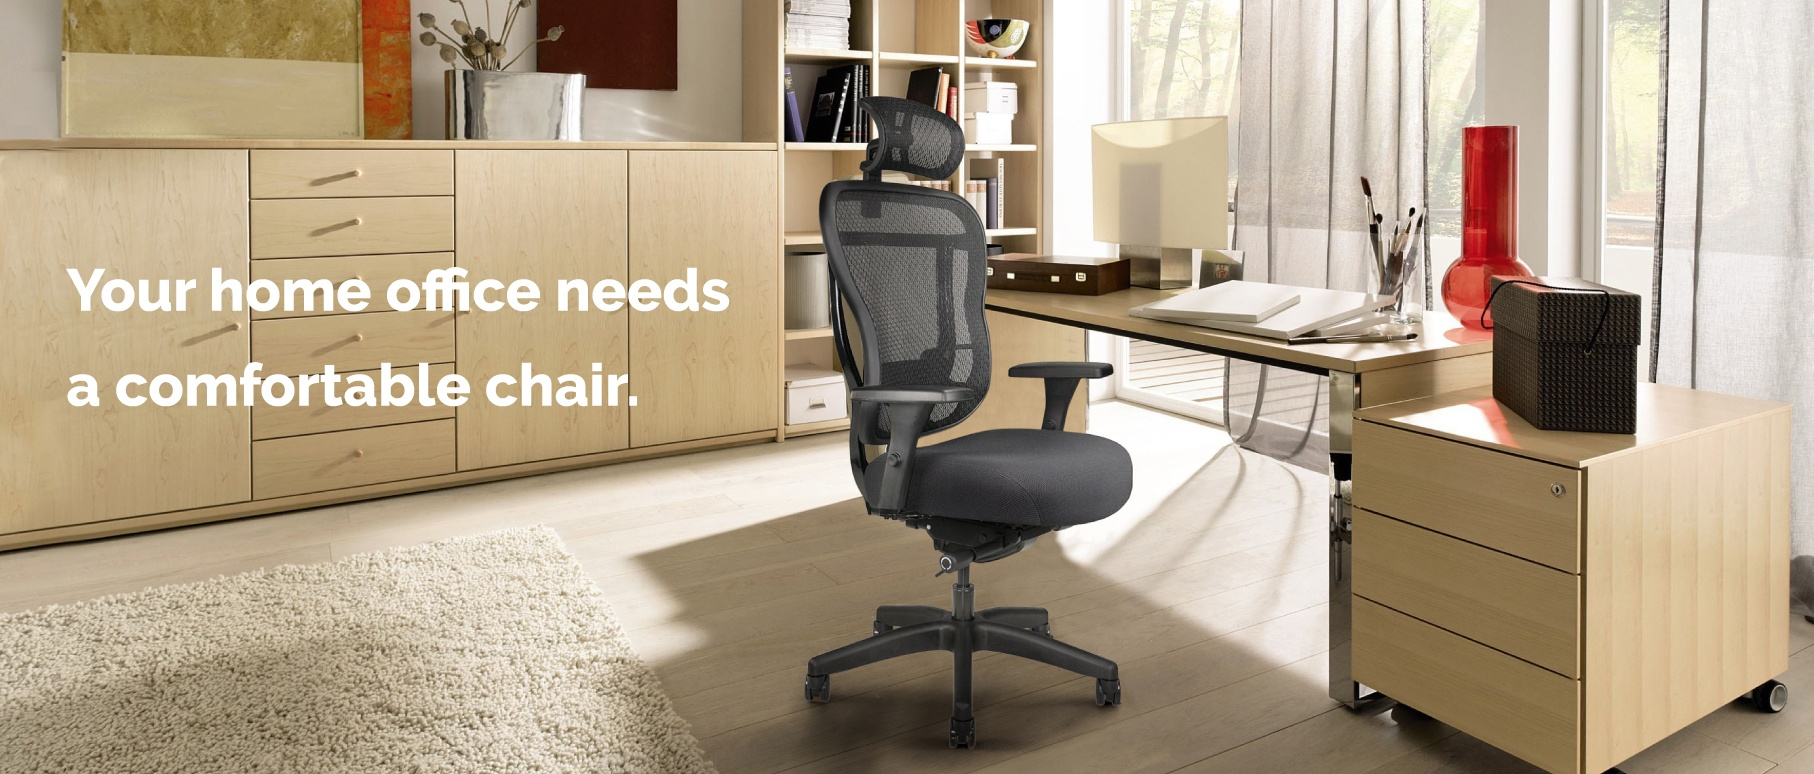 Office Chair with extra-thick seat cushion, mesh back, arms, wheels, and optional headrest